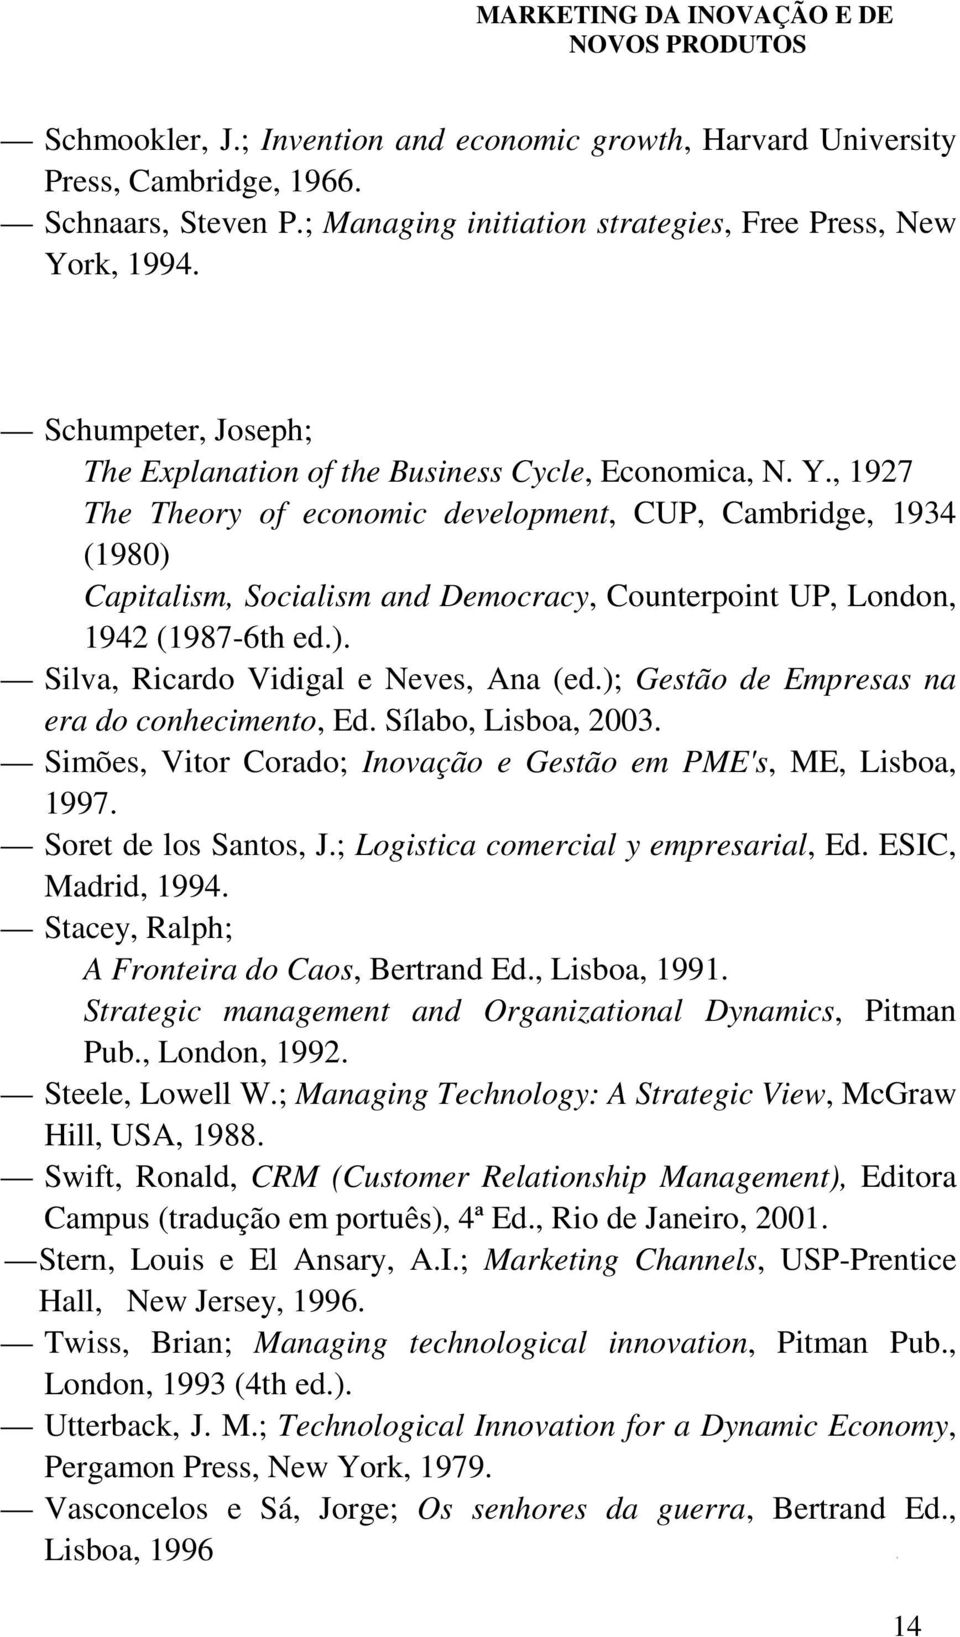 , 1927 The Theory of economic development, CUP, Cambridge, 1934 (1980) Capitalism, Socialism and Democracy, Counterpoint UP, London, 1942 (1987-6th ed.). Silva, Ricardo Vidigal e Neves, Ana (ed.